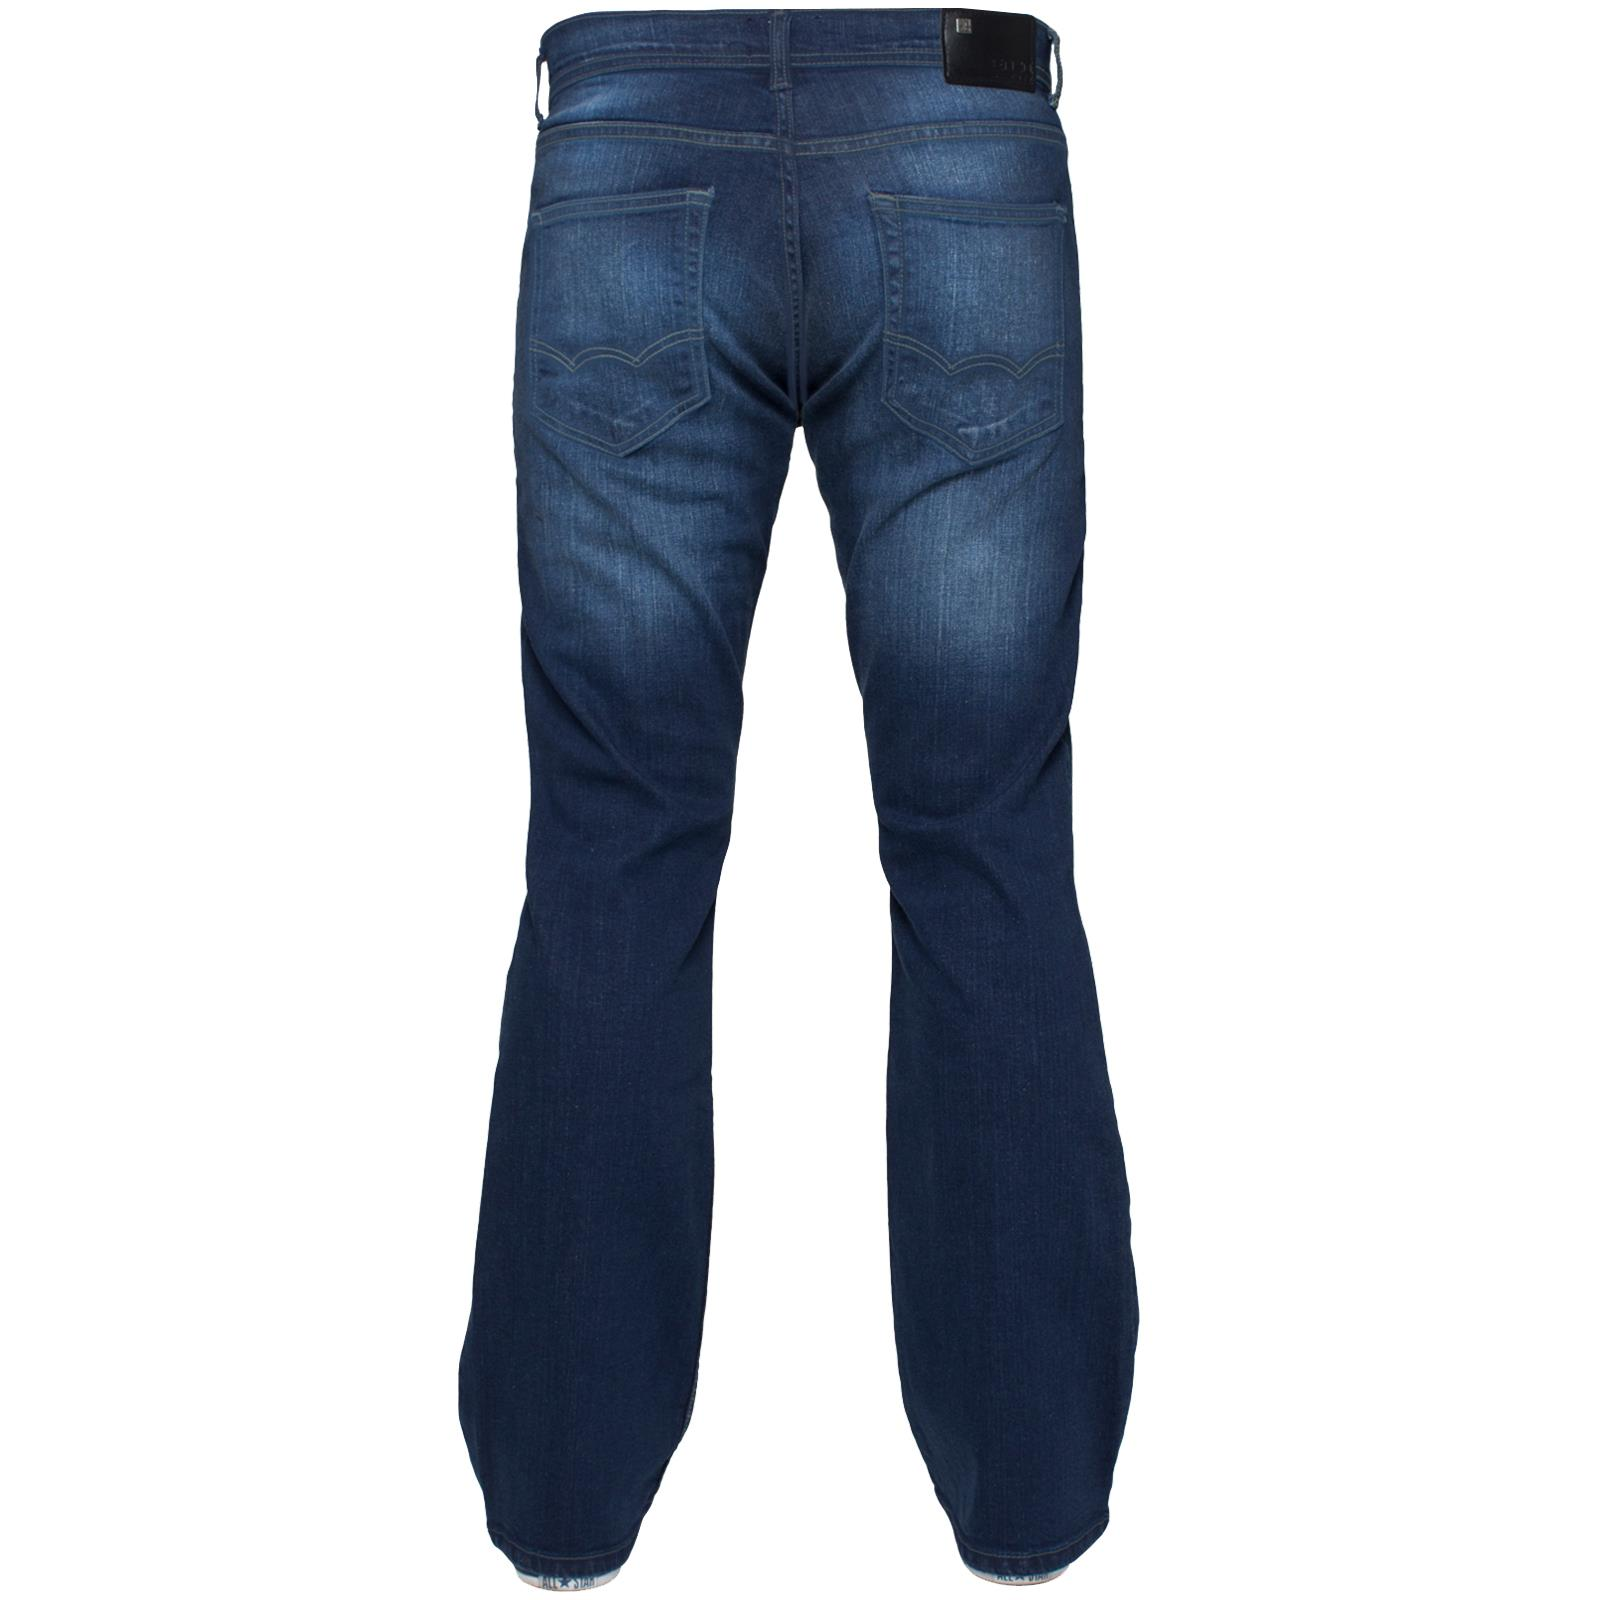 Enzo-Mens-Jeans-Big-Tall-Leg-King-Size-Denim-Pants-Chino-Trousers-Waist-44-034-60-034 miniature 64